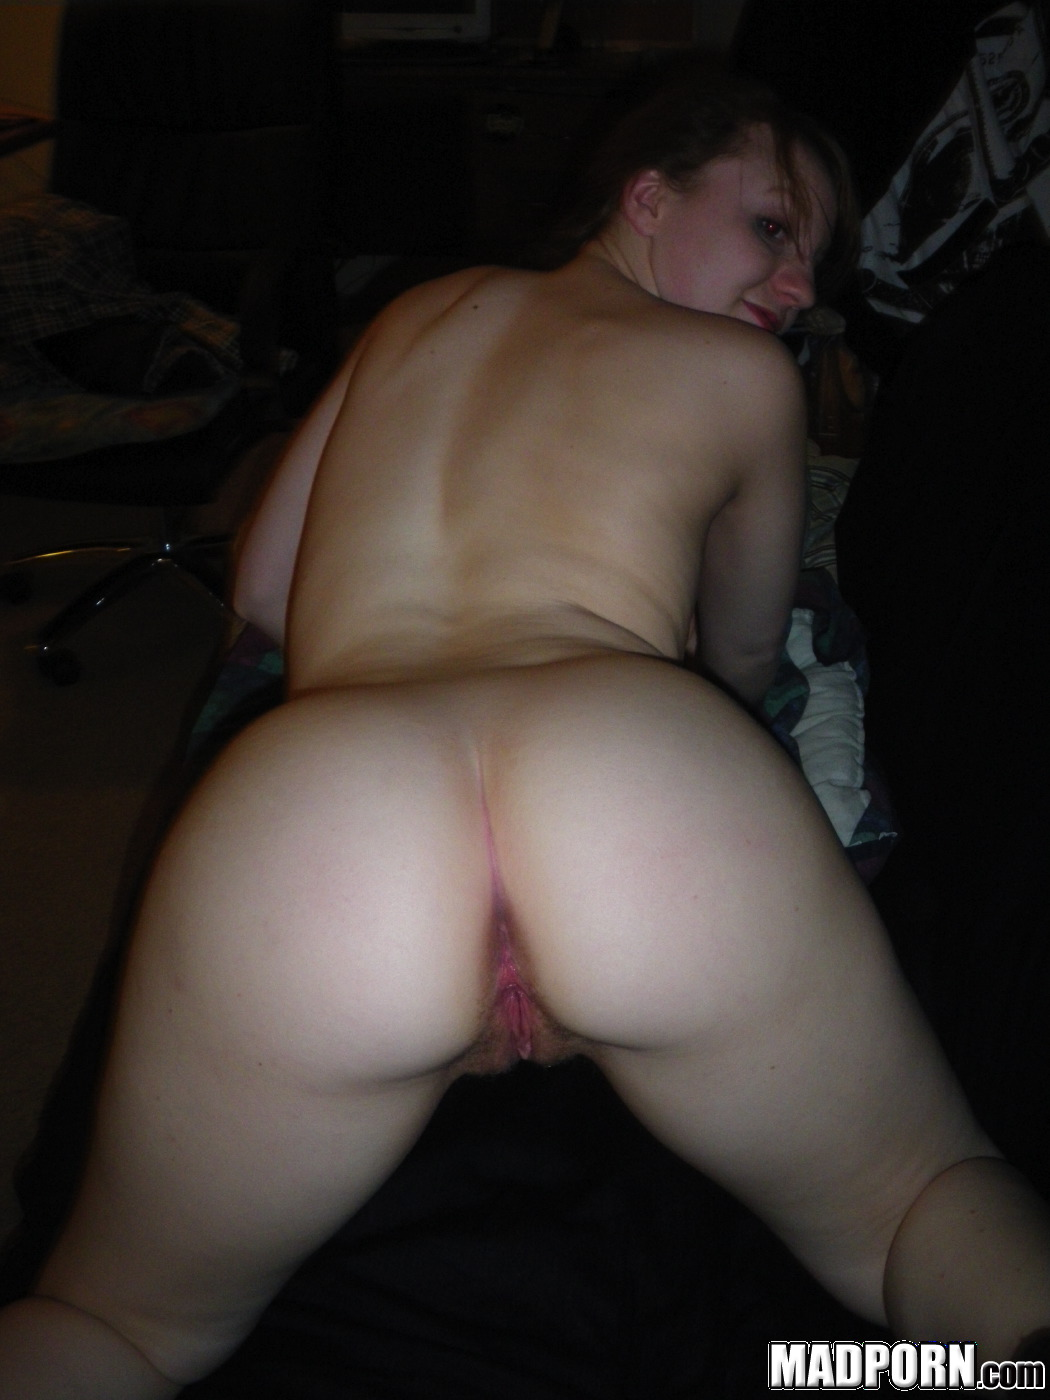 Homemade Teen Couple Pov